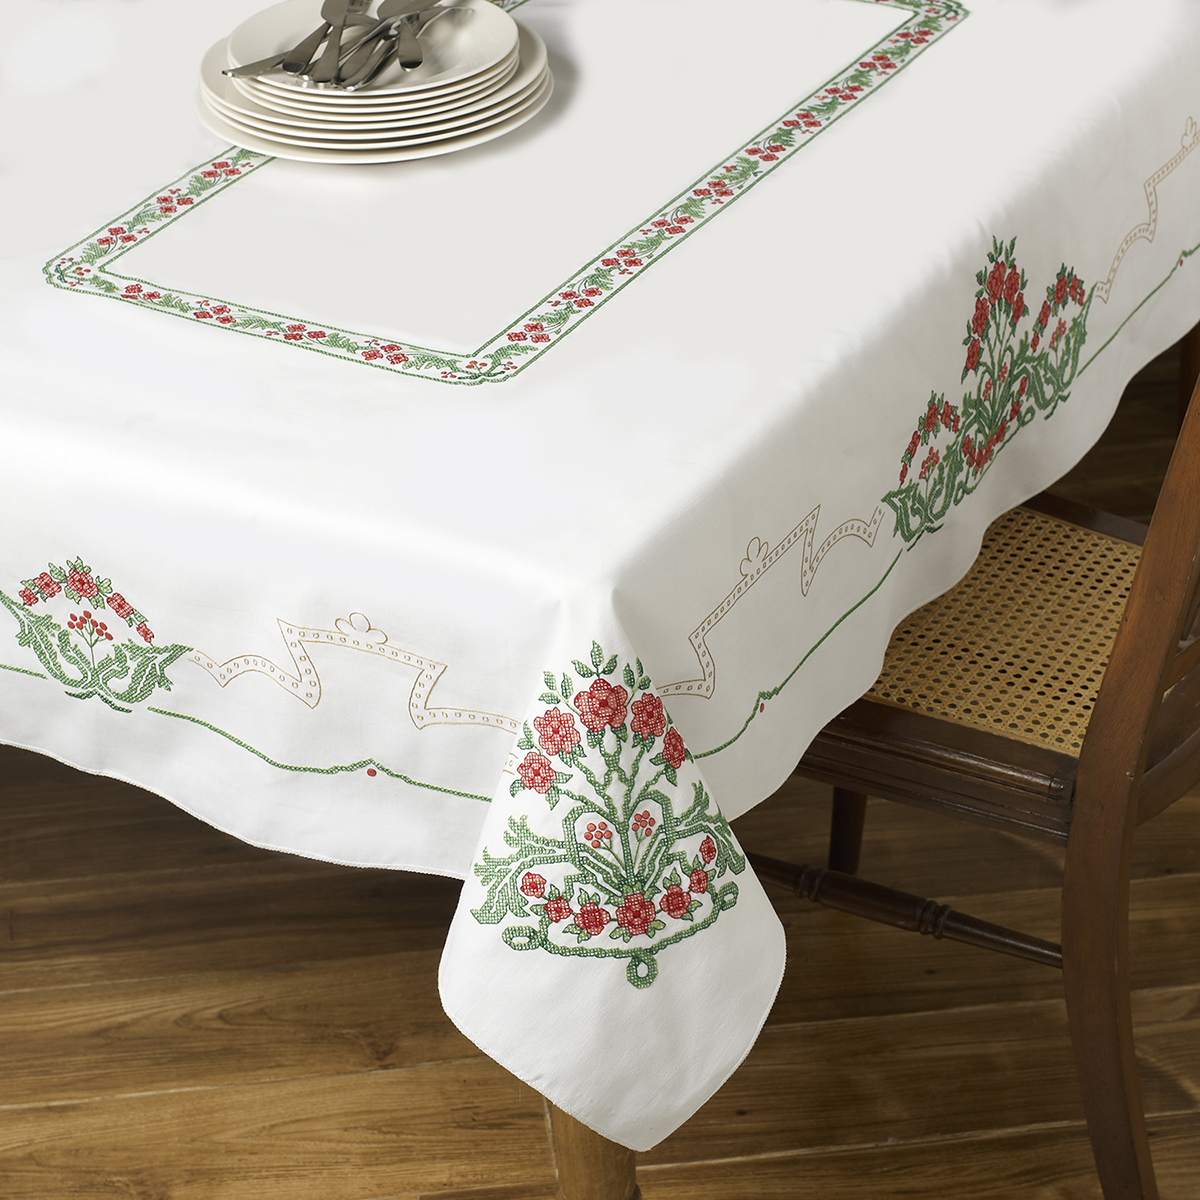 Stamped Cross Stitch Tablecloth 60 Inch X 90 Inch-Victorian Frieze